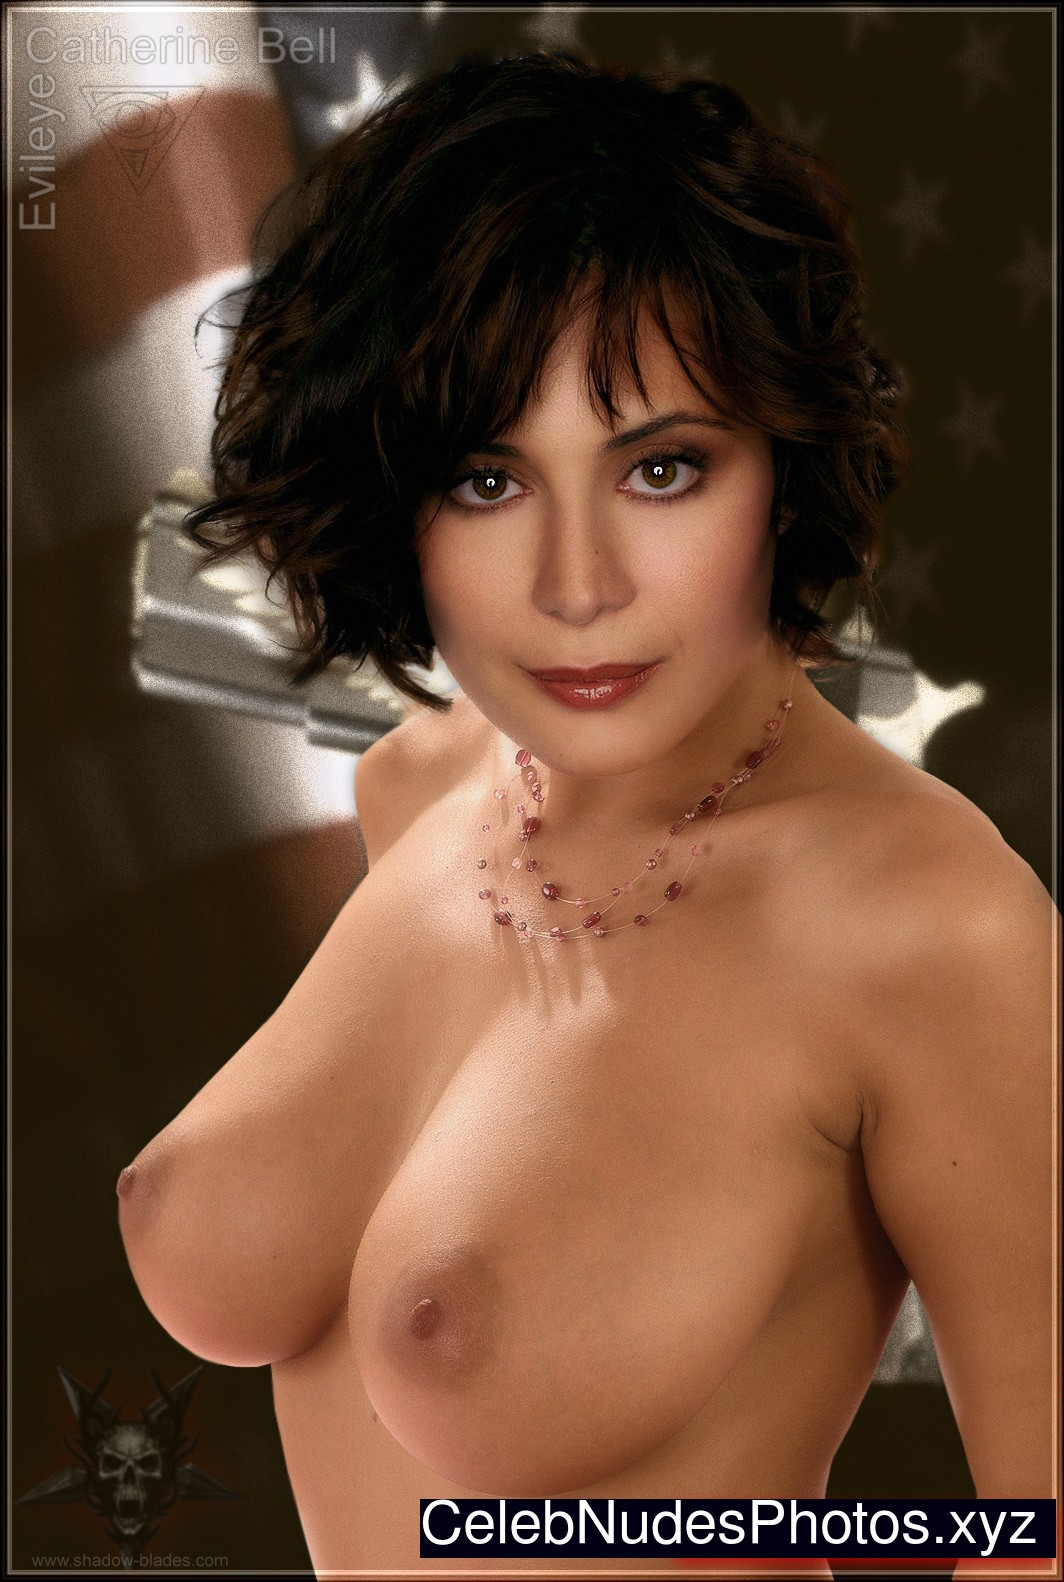 Catherine bell topless share your